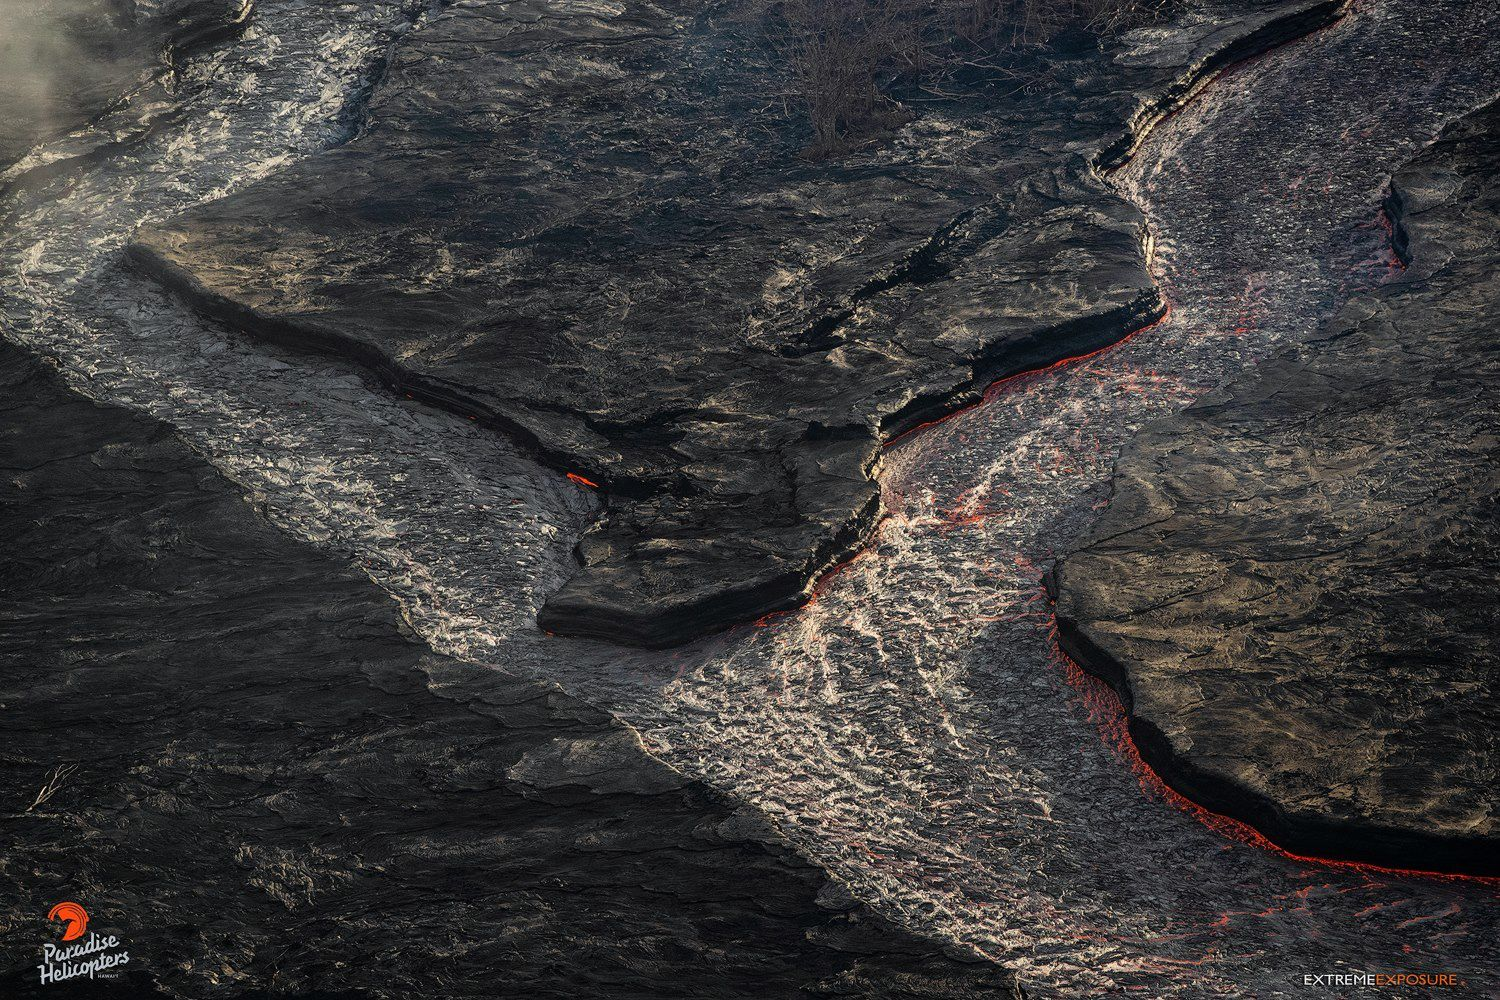 Kilauea East rift zone - the level of lava has dropped in the channel - photo Bruce Omori 24.07.2018 / 6h